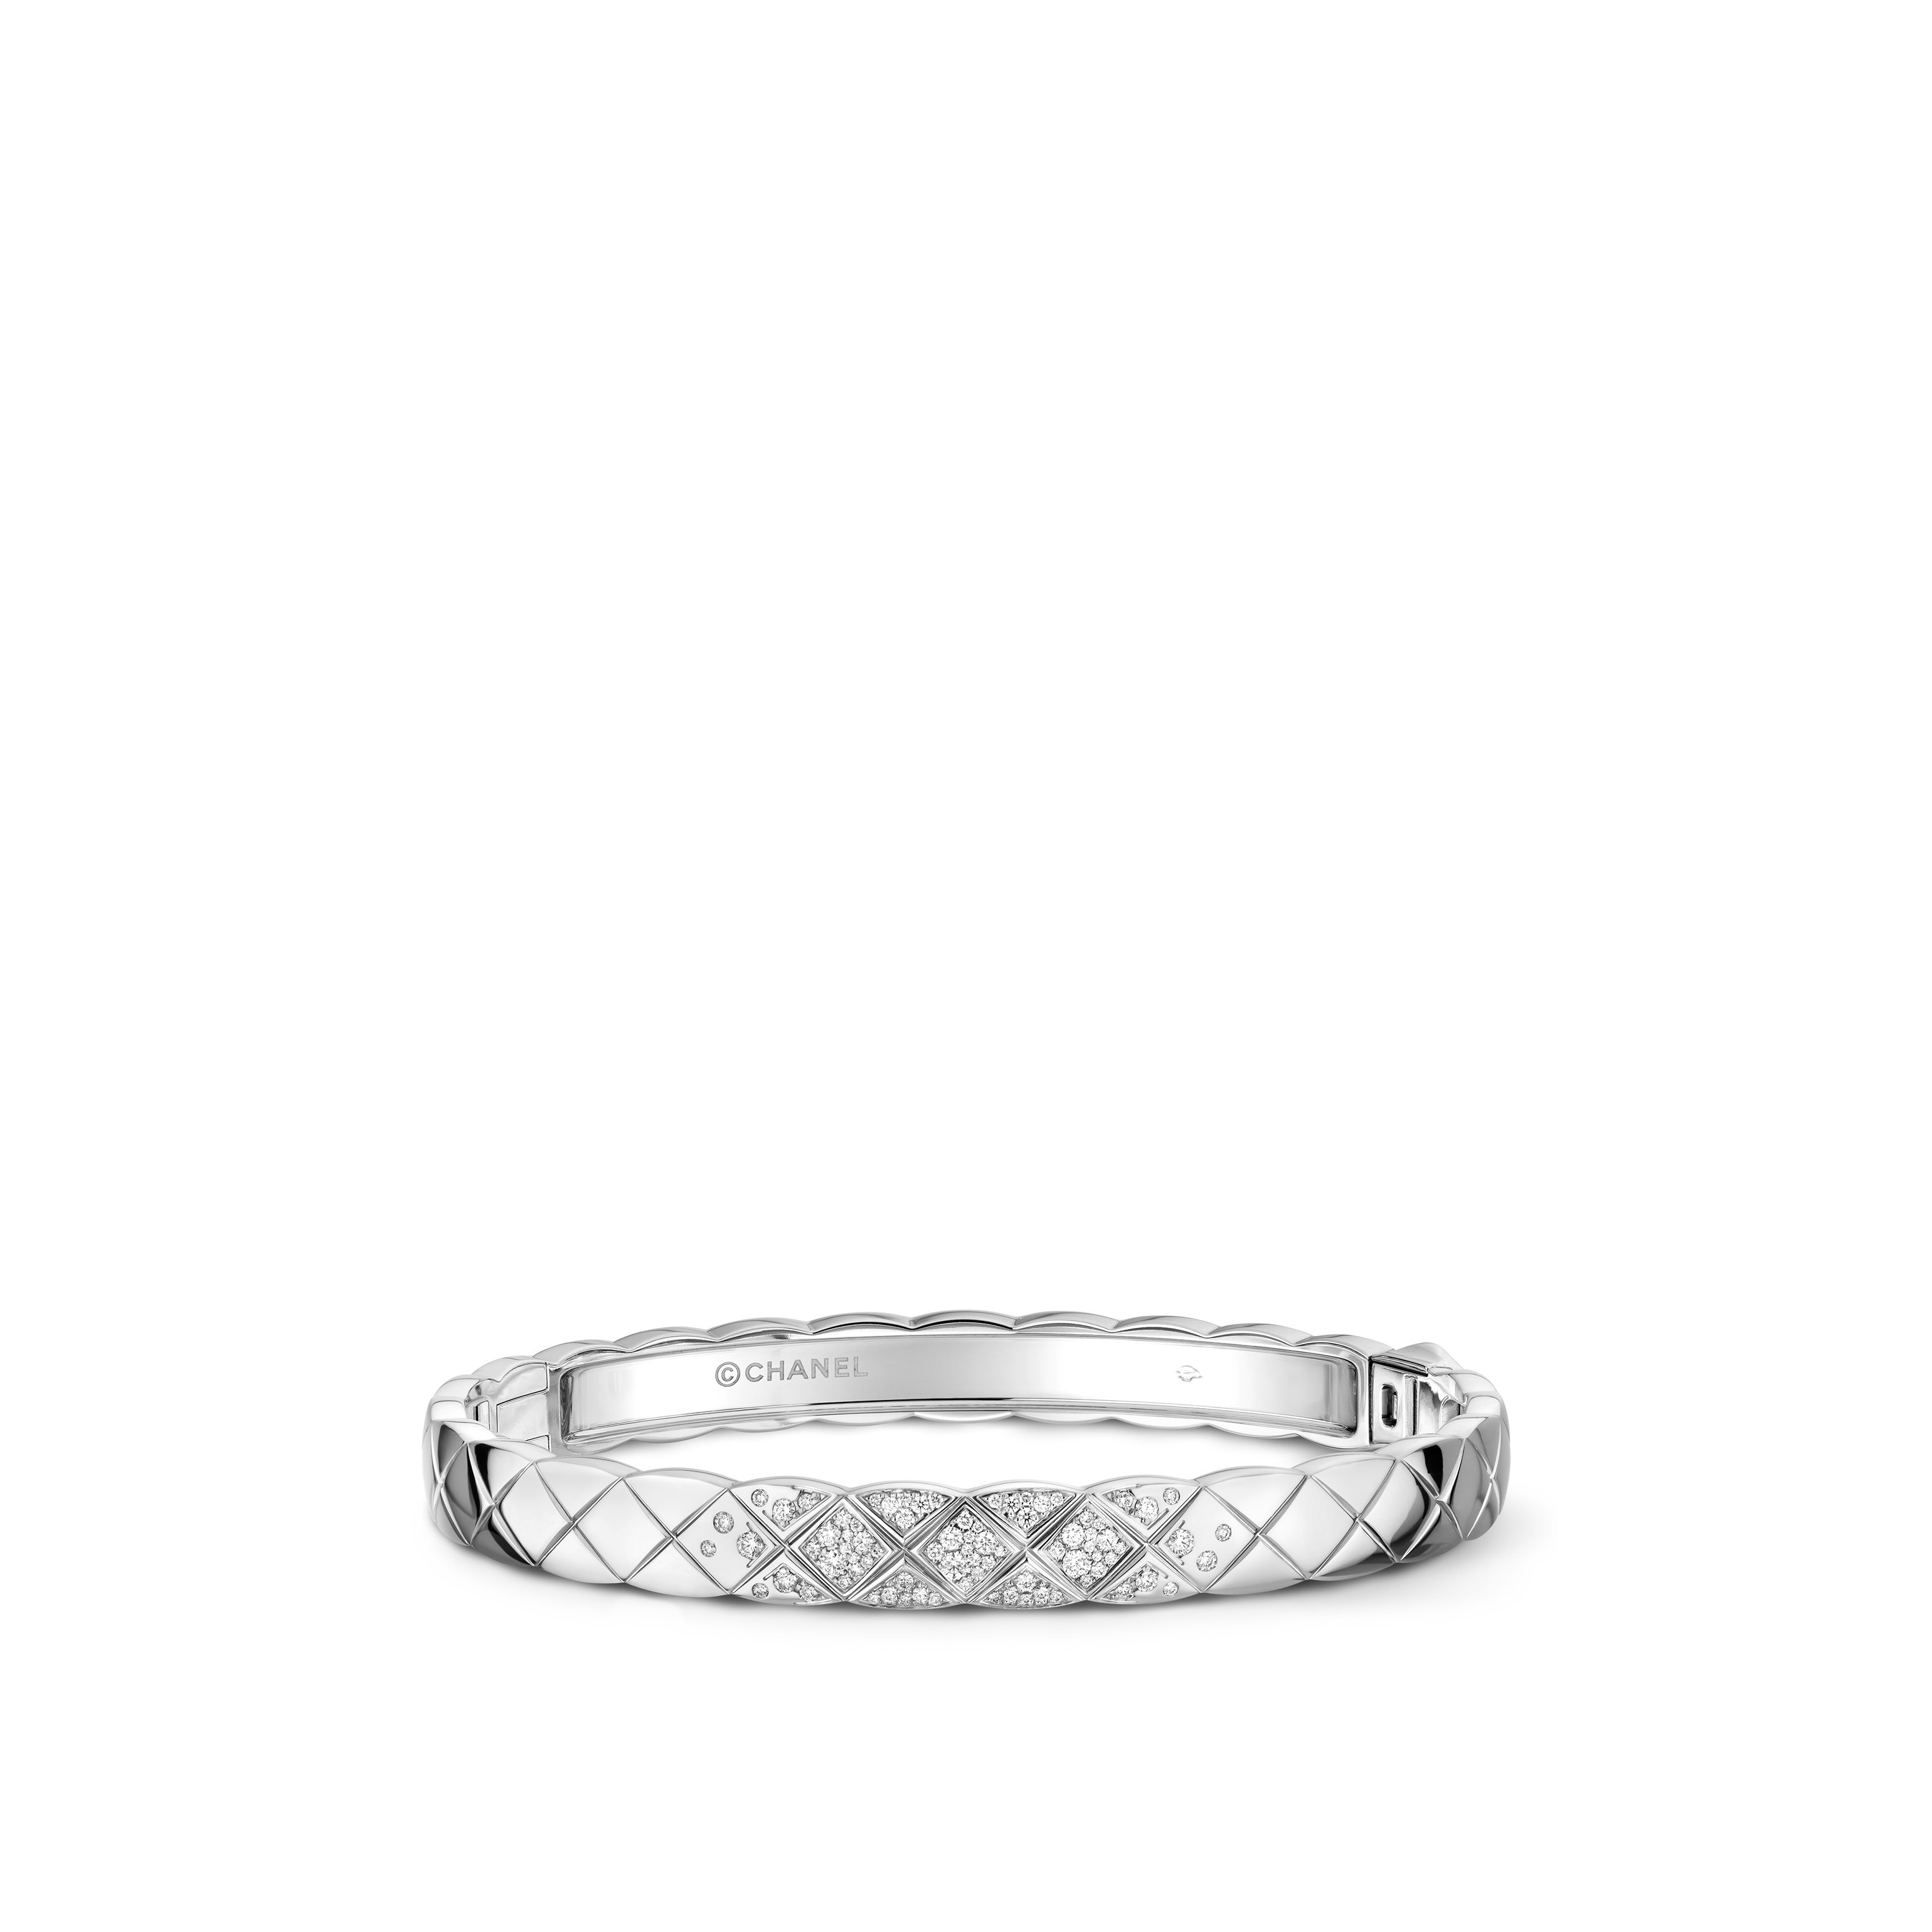 Coco Crush bracelet - Quilted motif, 18K white gold, diamonds - CHANEL - Default view - see standard sized version